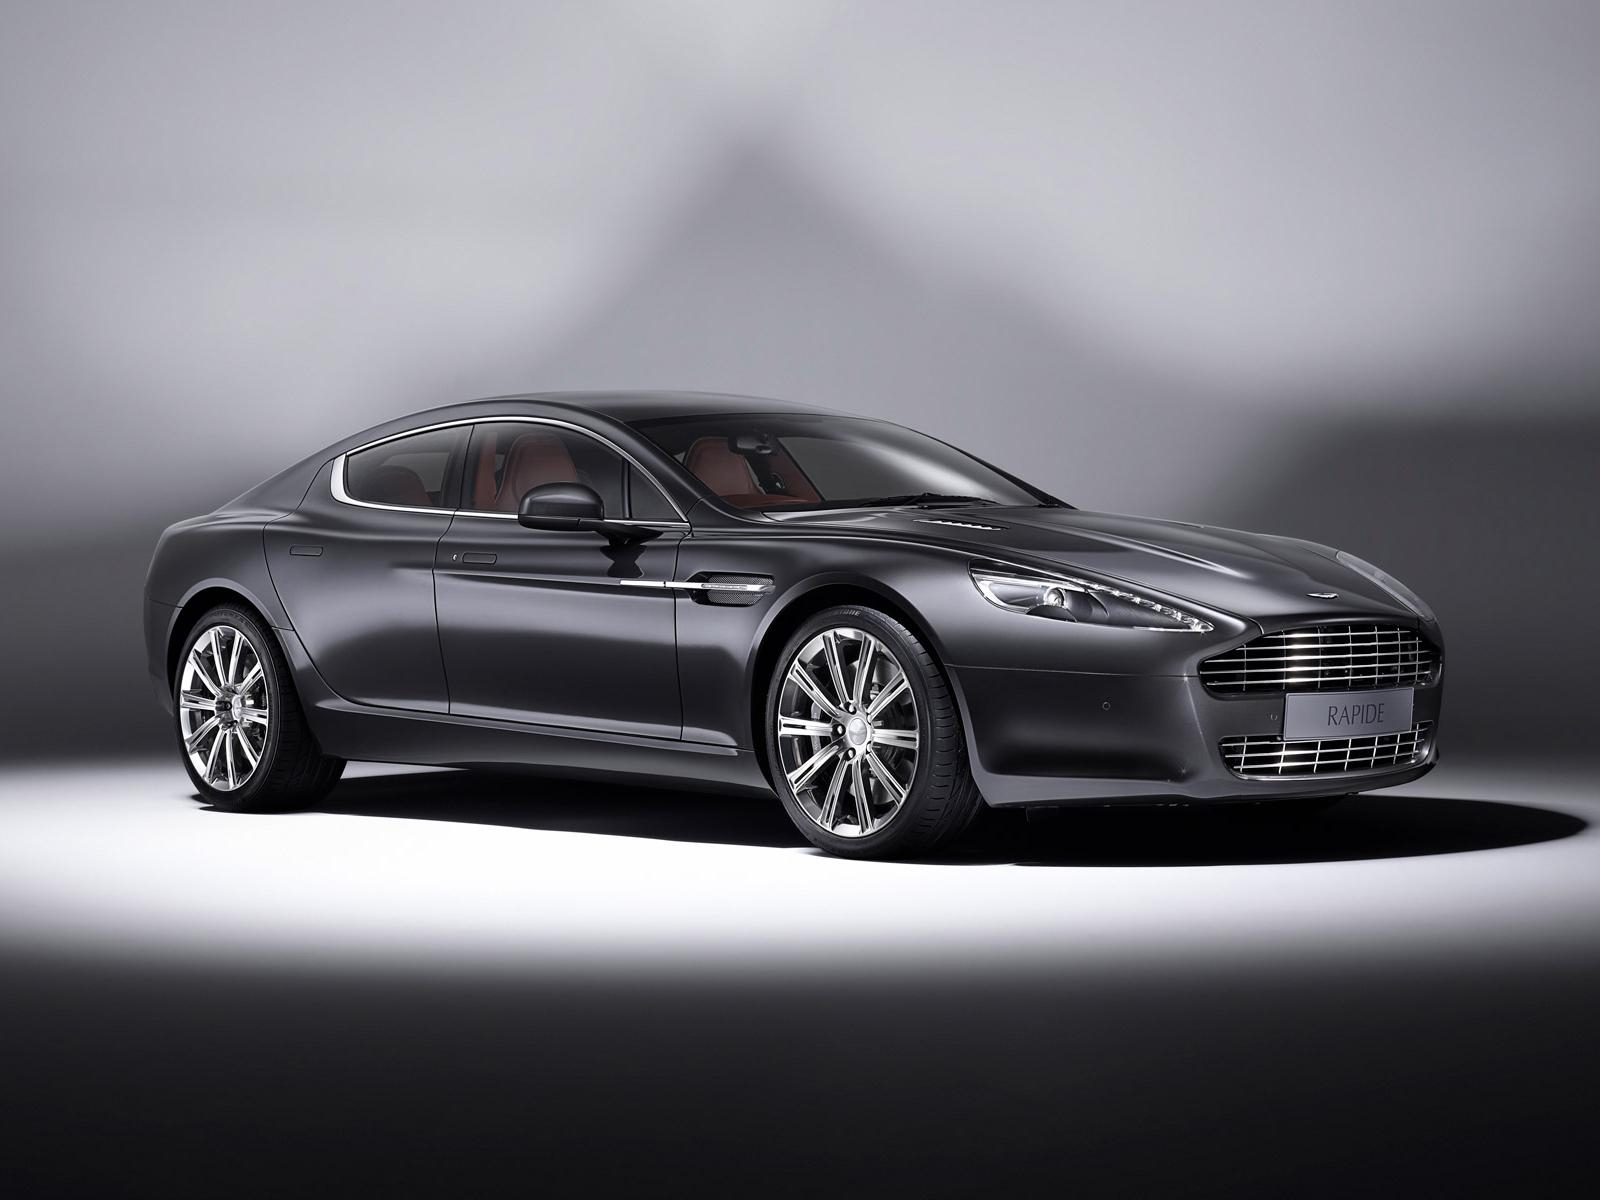 Aston Martin Rapide Luxe Special Edition Revealed